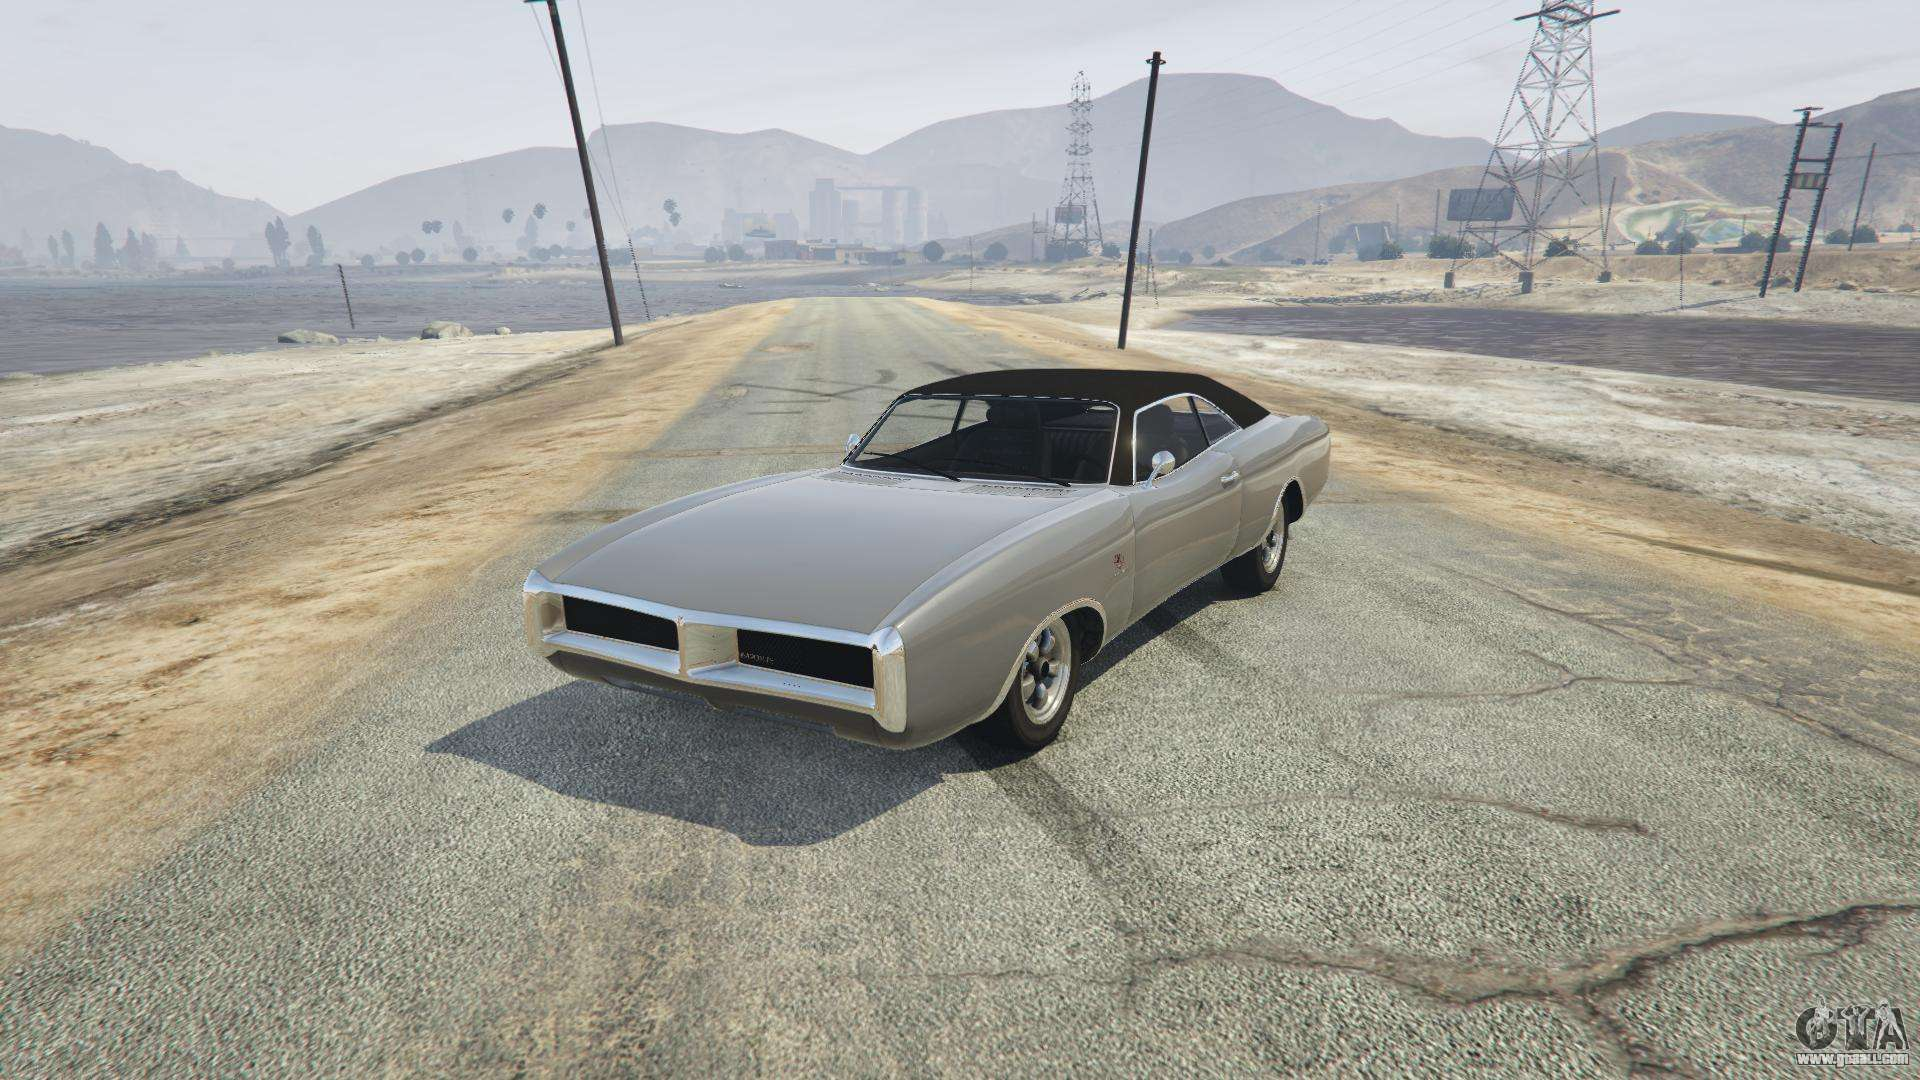 Imponte Dukes From Gta Screenshots Features And Description